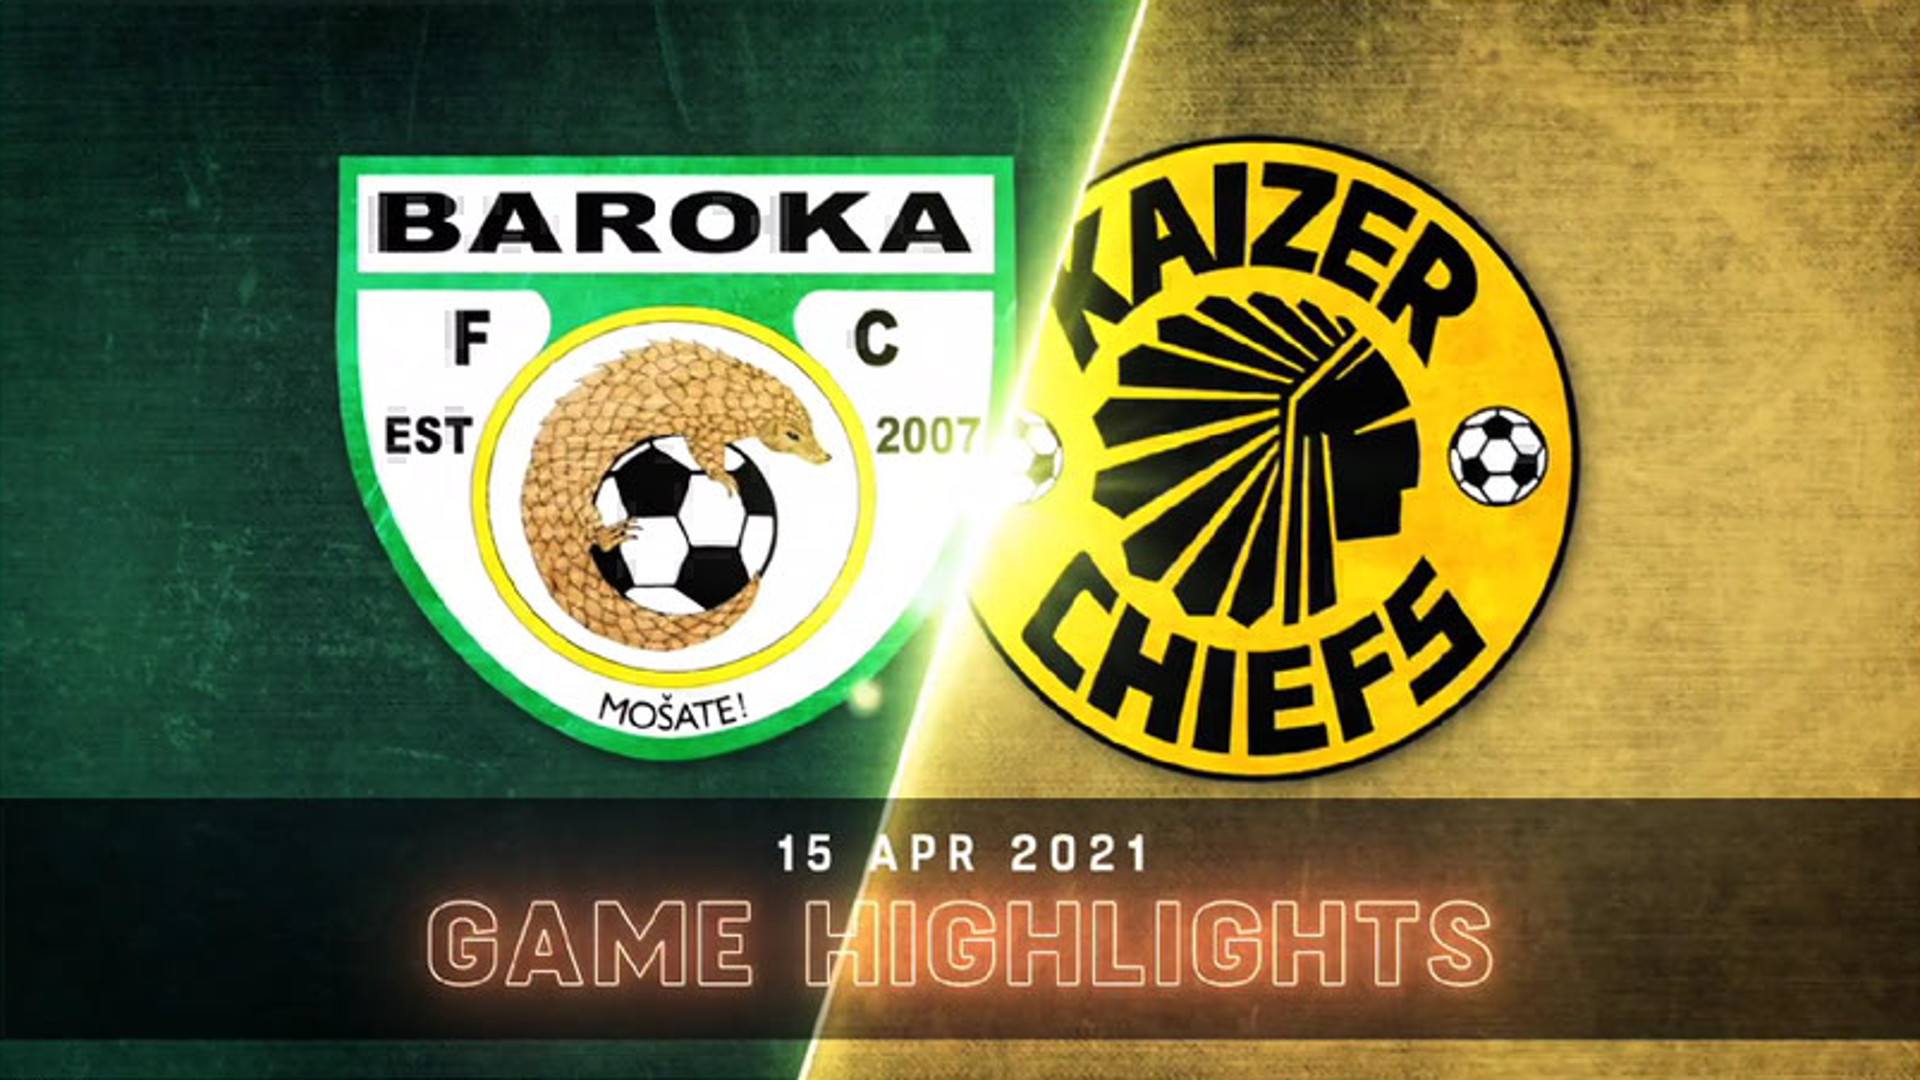 DStv Premiership | Baroka FC v Kaizer Chiefs | Highlights